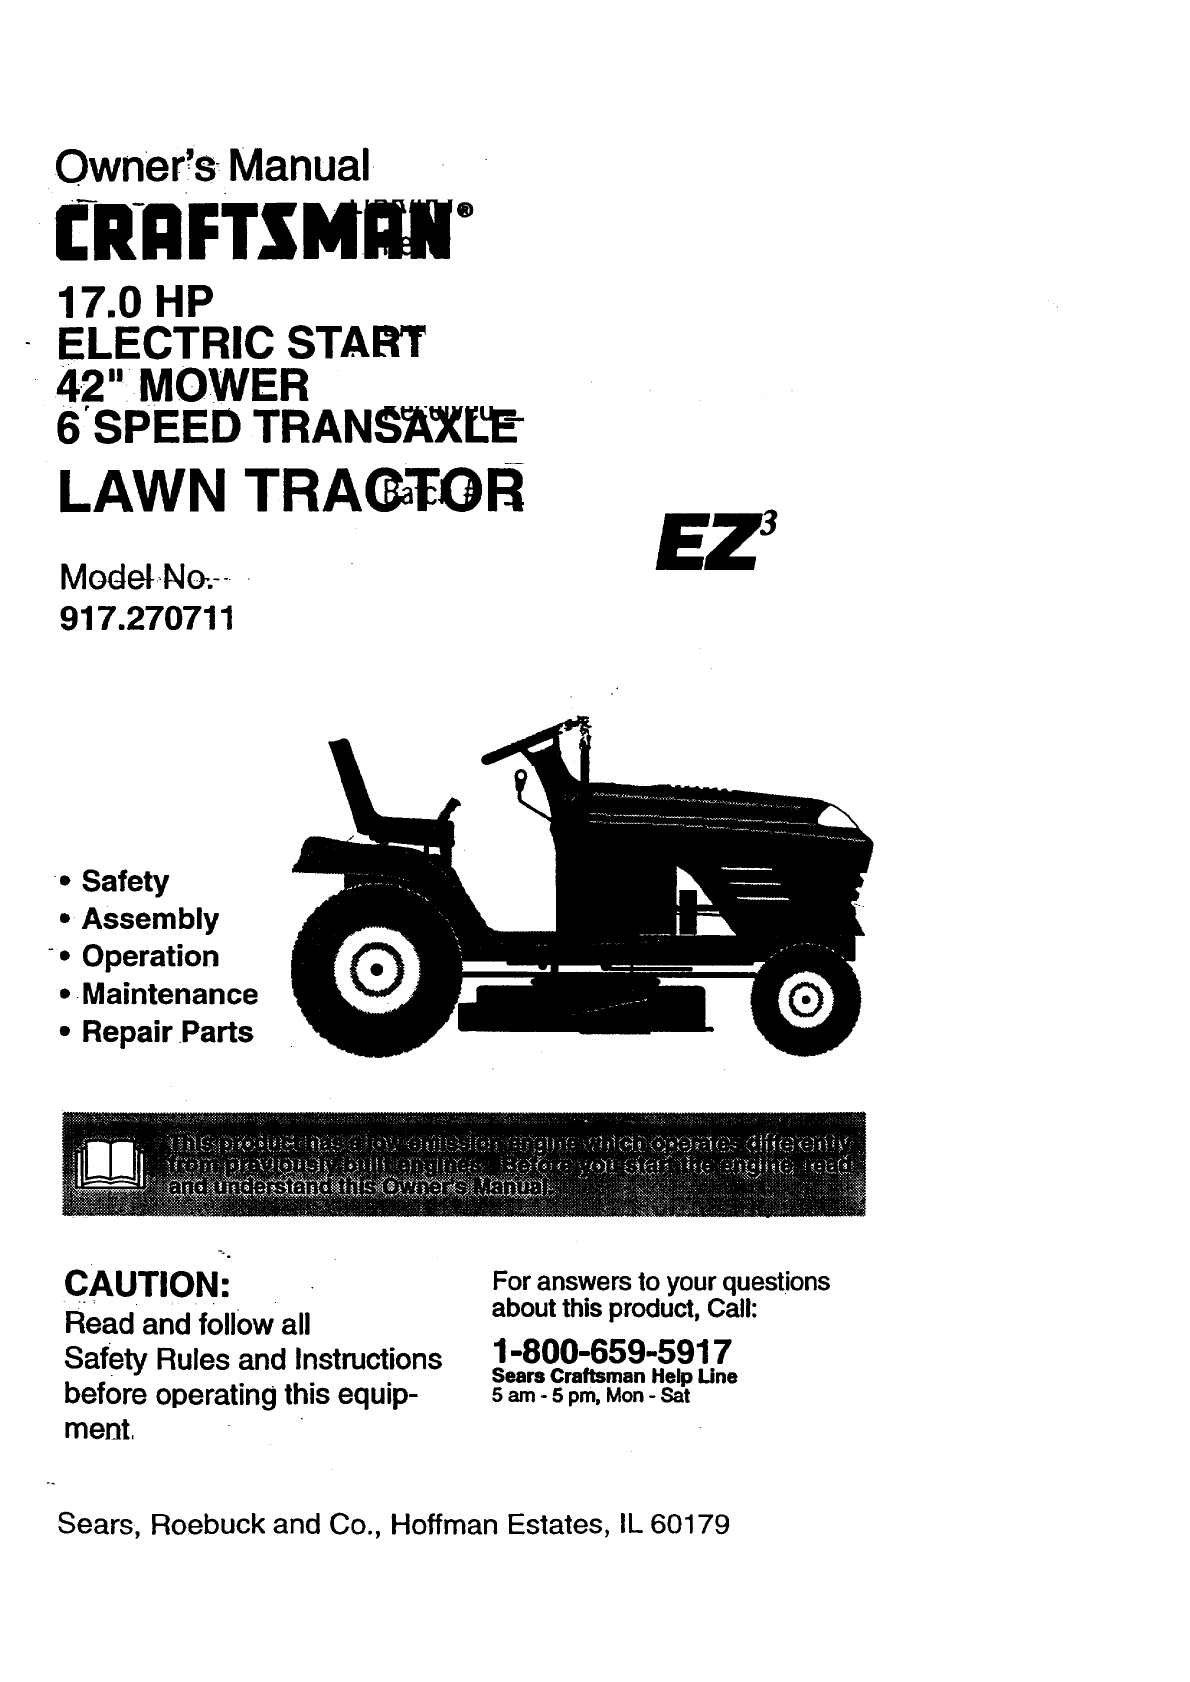 4f9bd438 eab7 46fb 9a83 b87d883133bd bg1 craftsman lawn mower 917 270711 user guide manualsonline com craftsman model 917 wiring diagram at nearapp.co